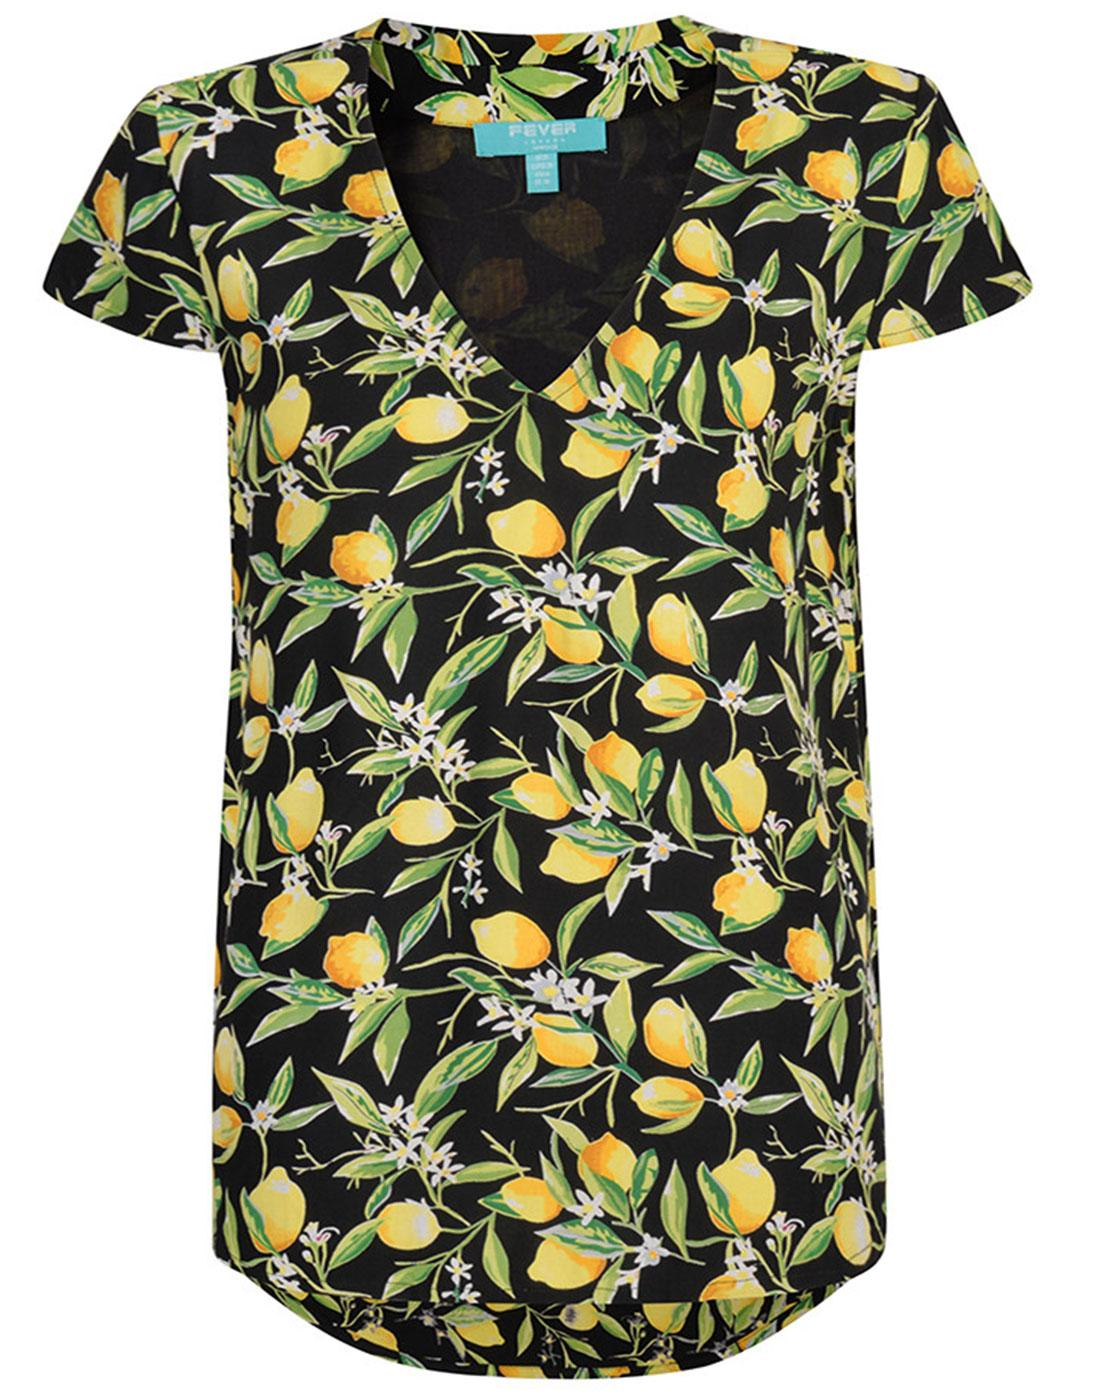 FEVER Retro Lemon Blosson V-Neck Summer Top